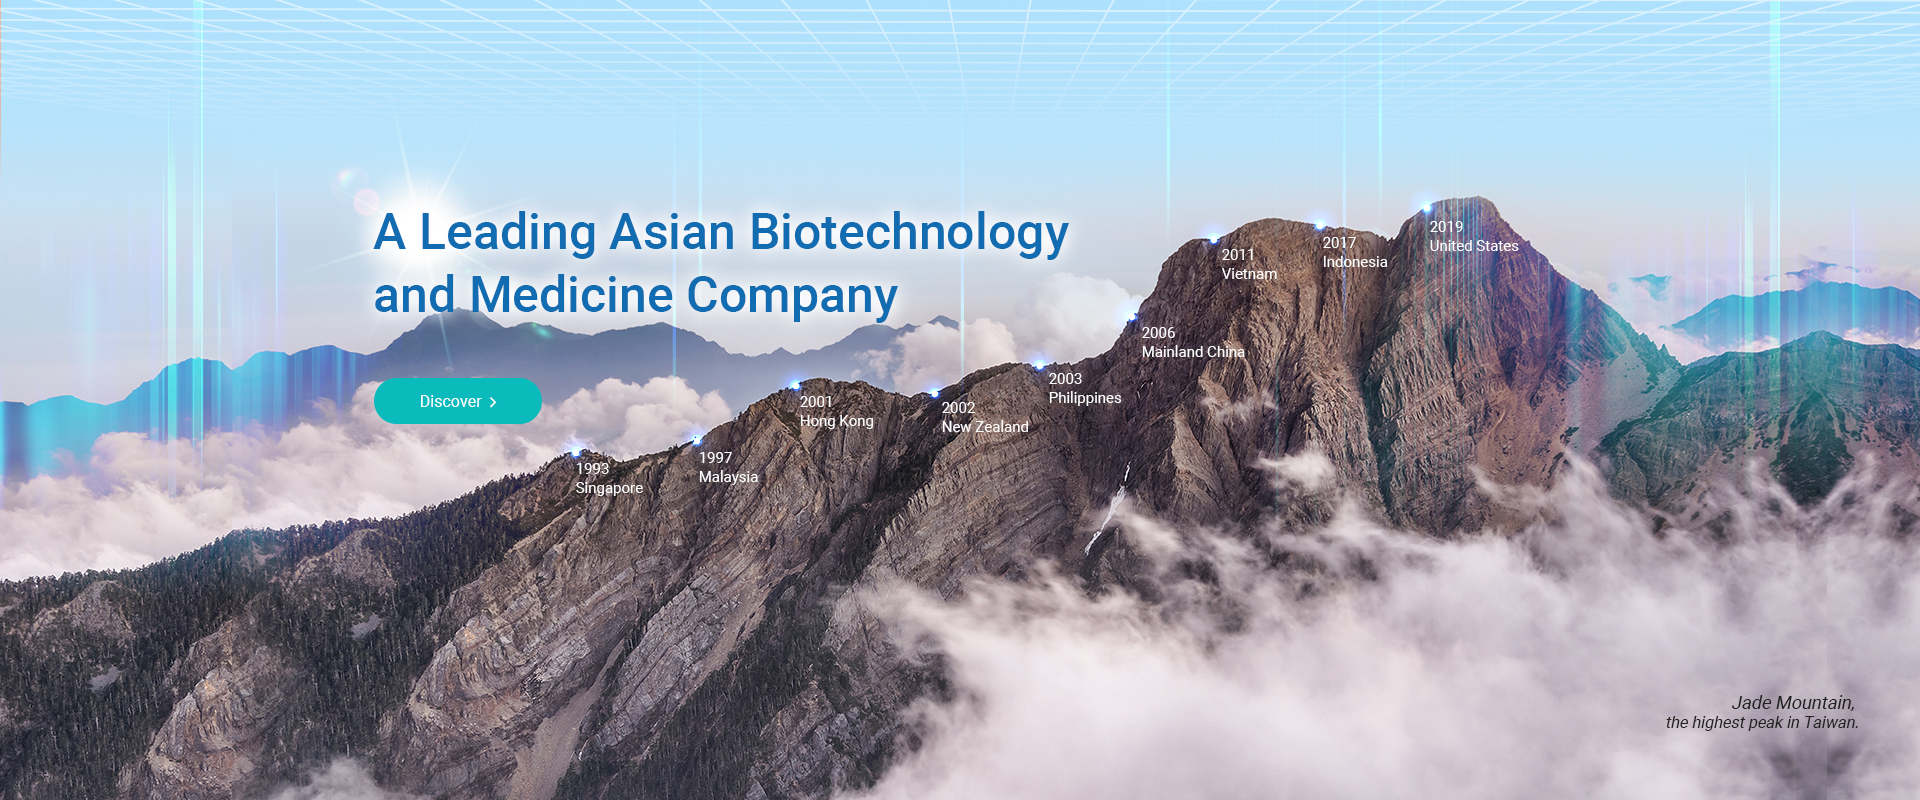 Leading Asian Biotechnology